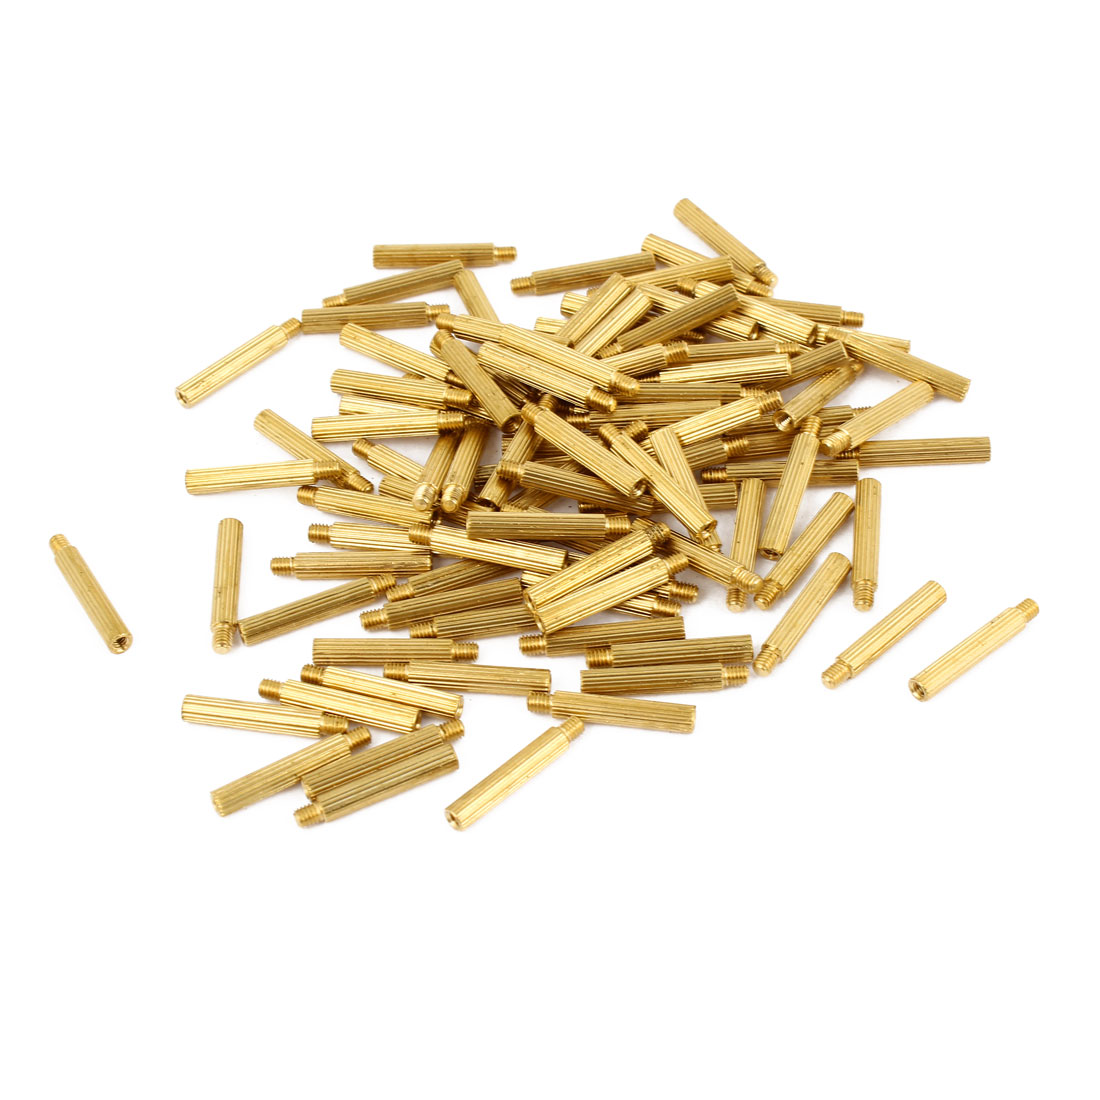 100Pcs Male to Female Thread Grooved Brass Pillars Standoff M2x16mm